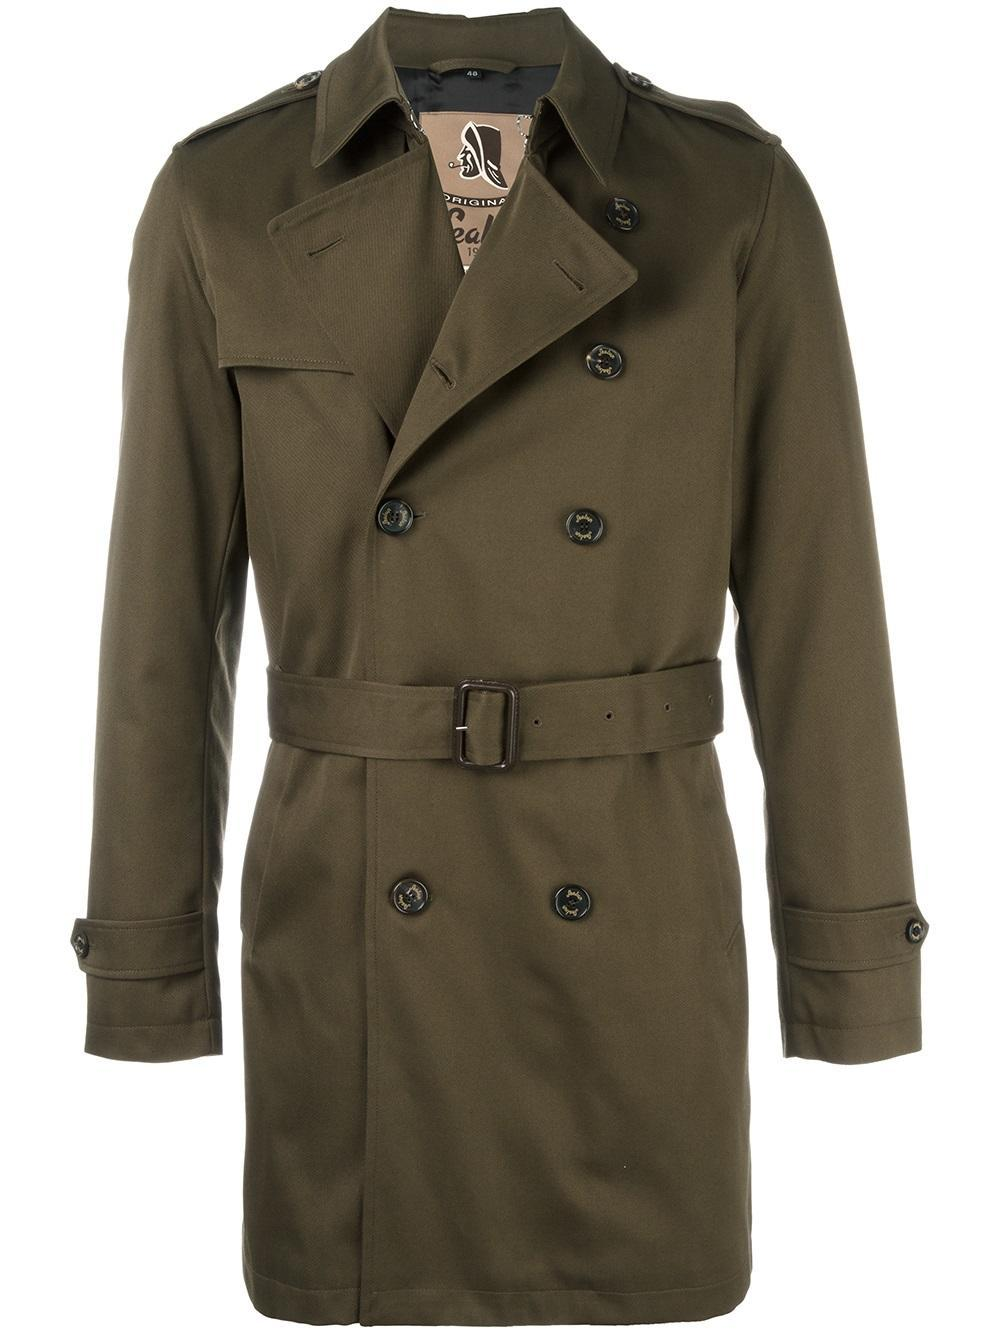 Sealup Classic Mid Trenchcoat in Green for Men - Lyst